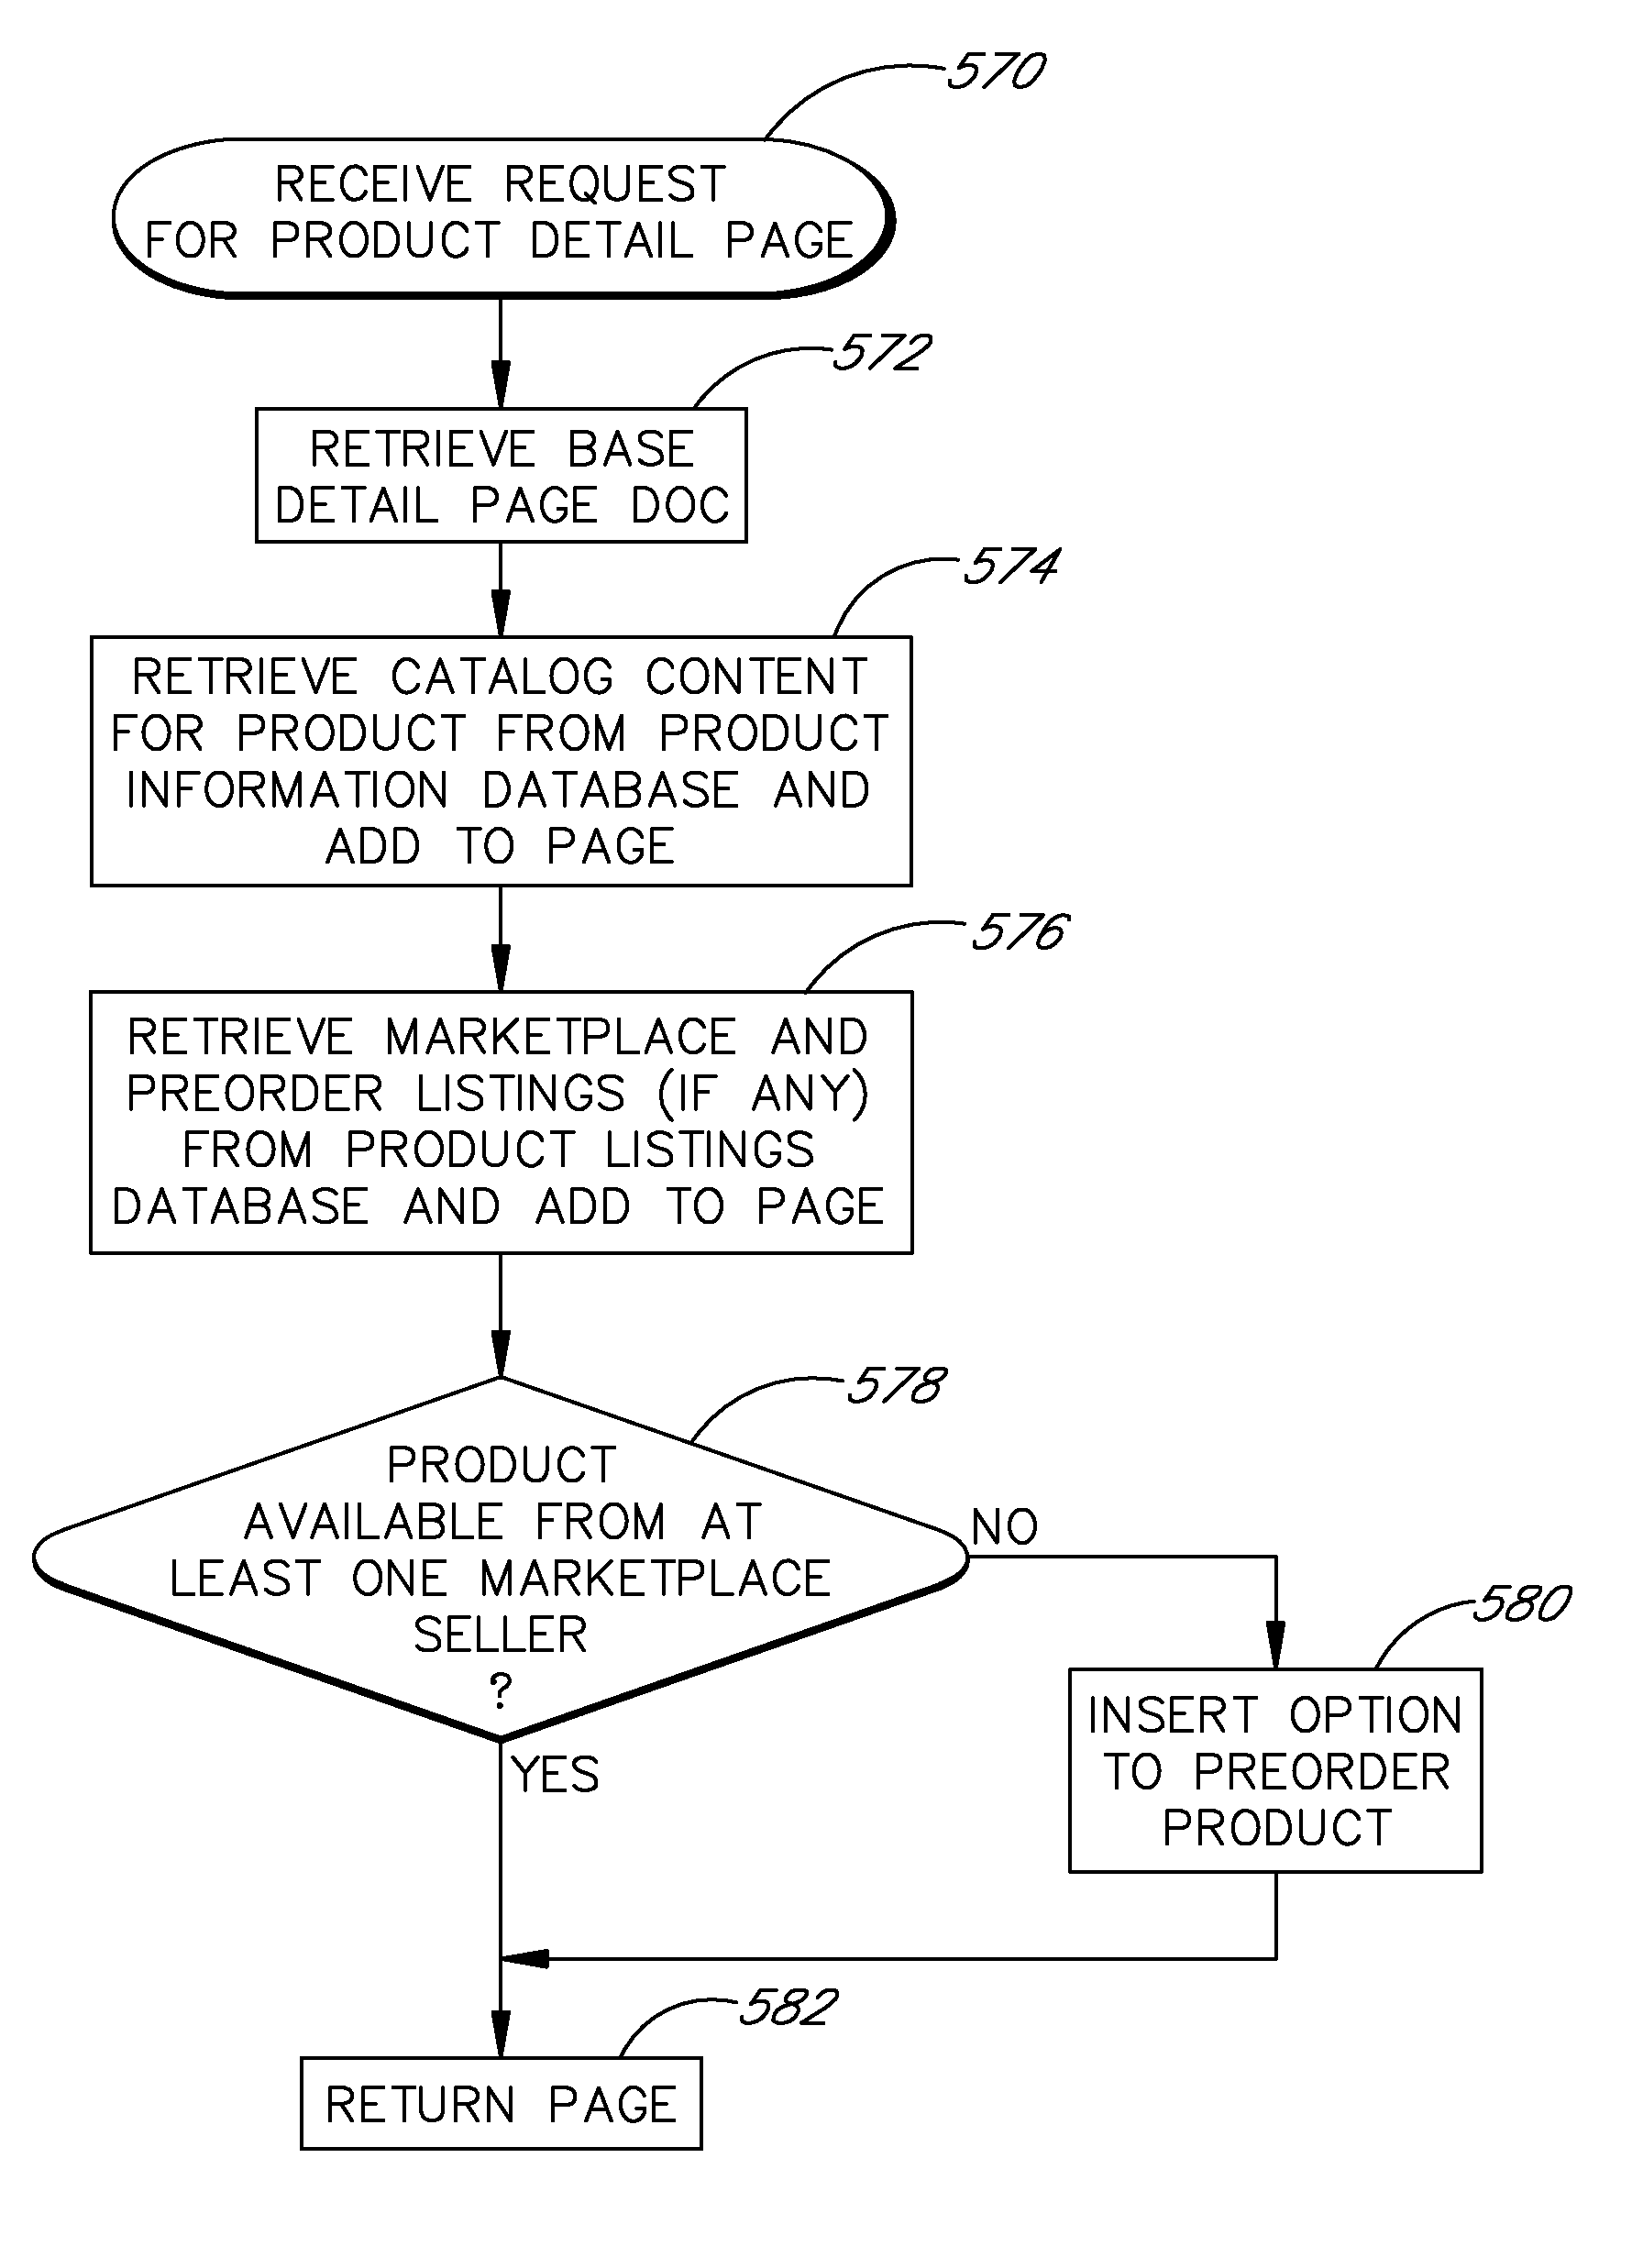 Amazon  patent by Jeff Bezos from 2008 for user interfaces and methods for facilitating user-to-user sales - US7472077